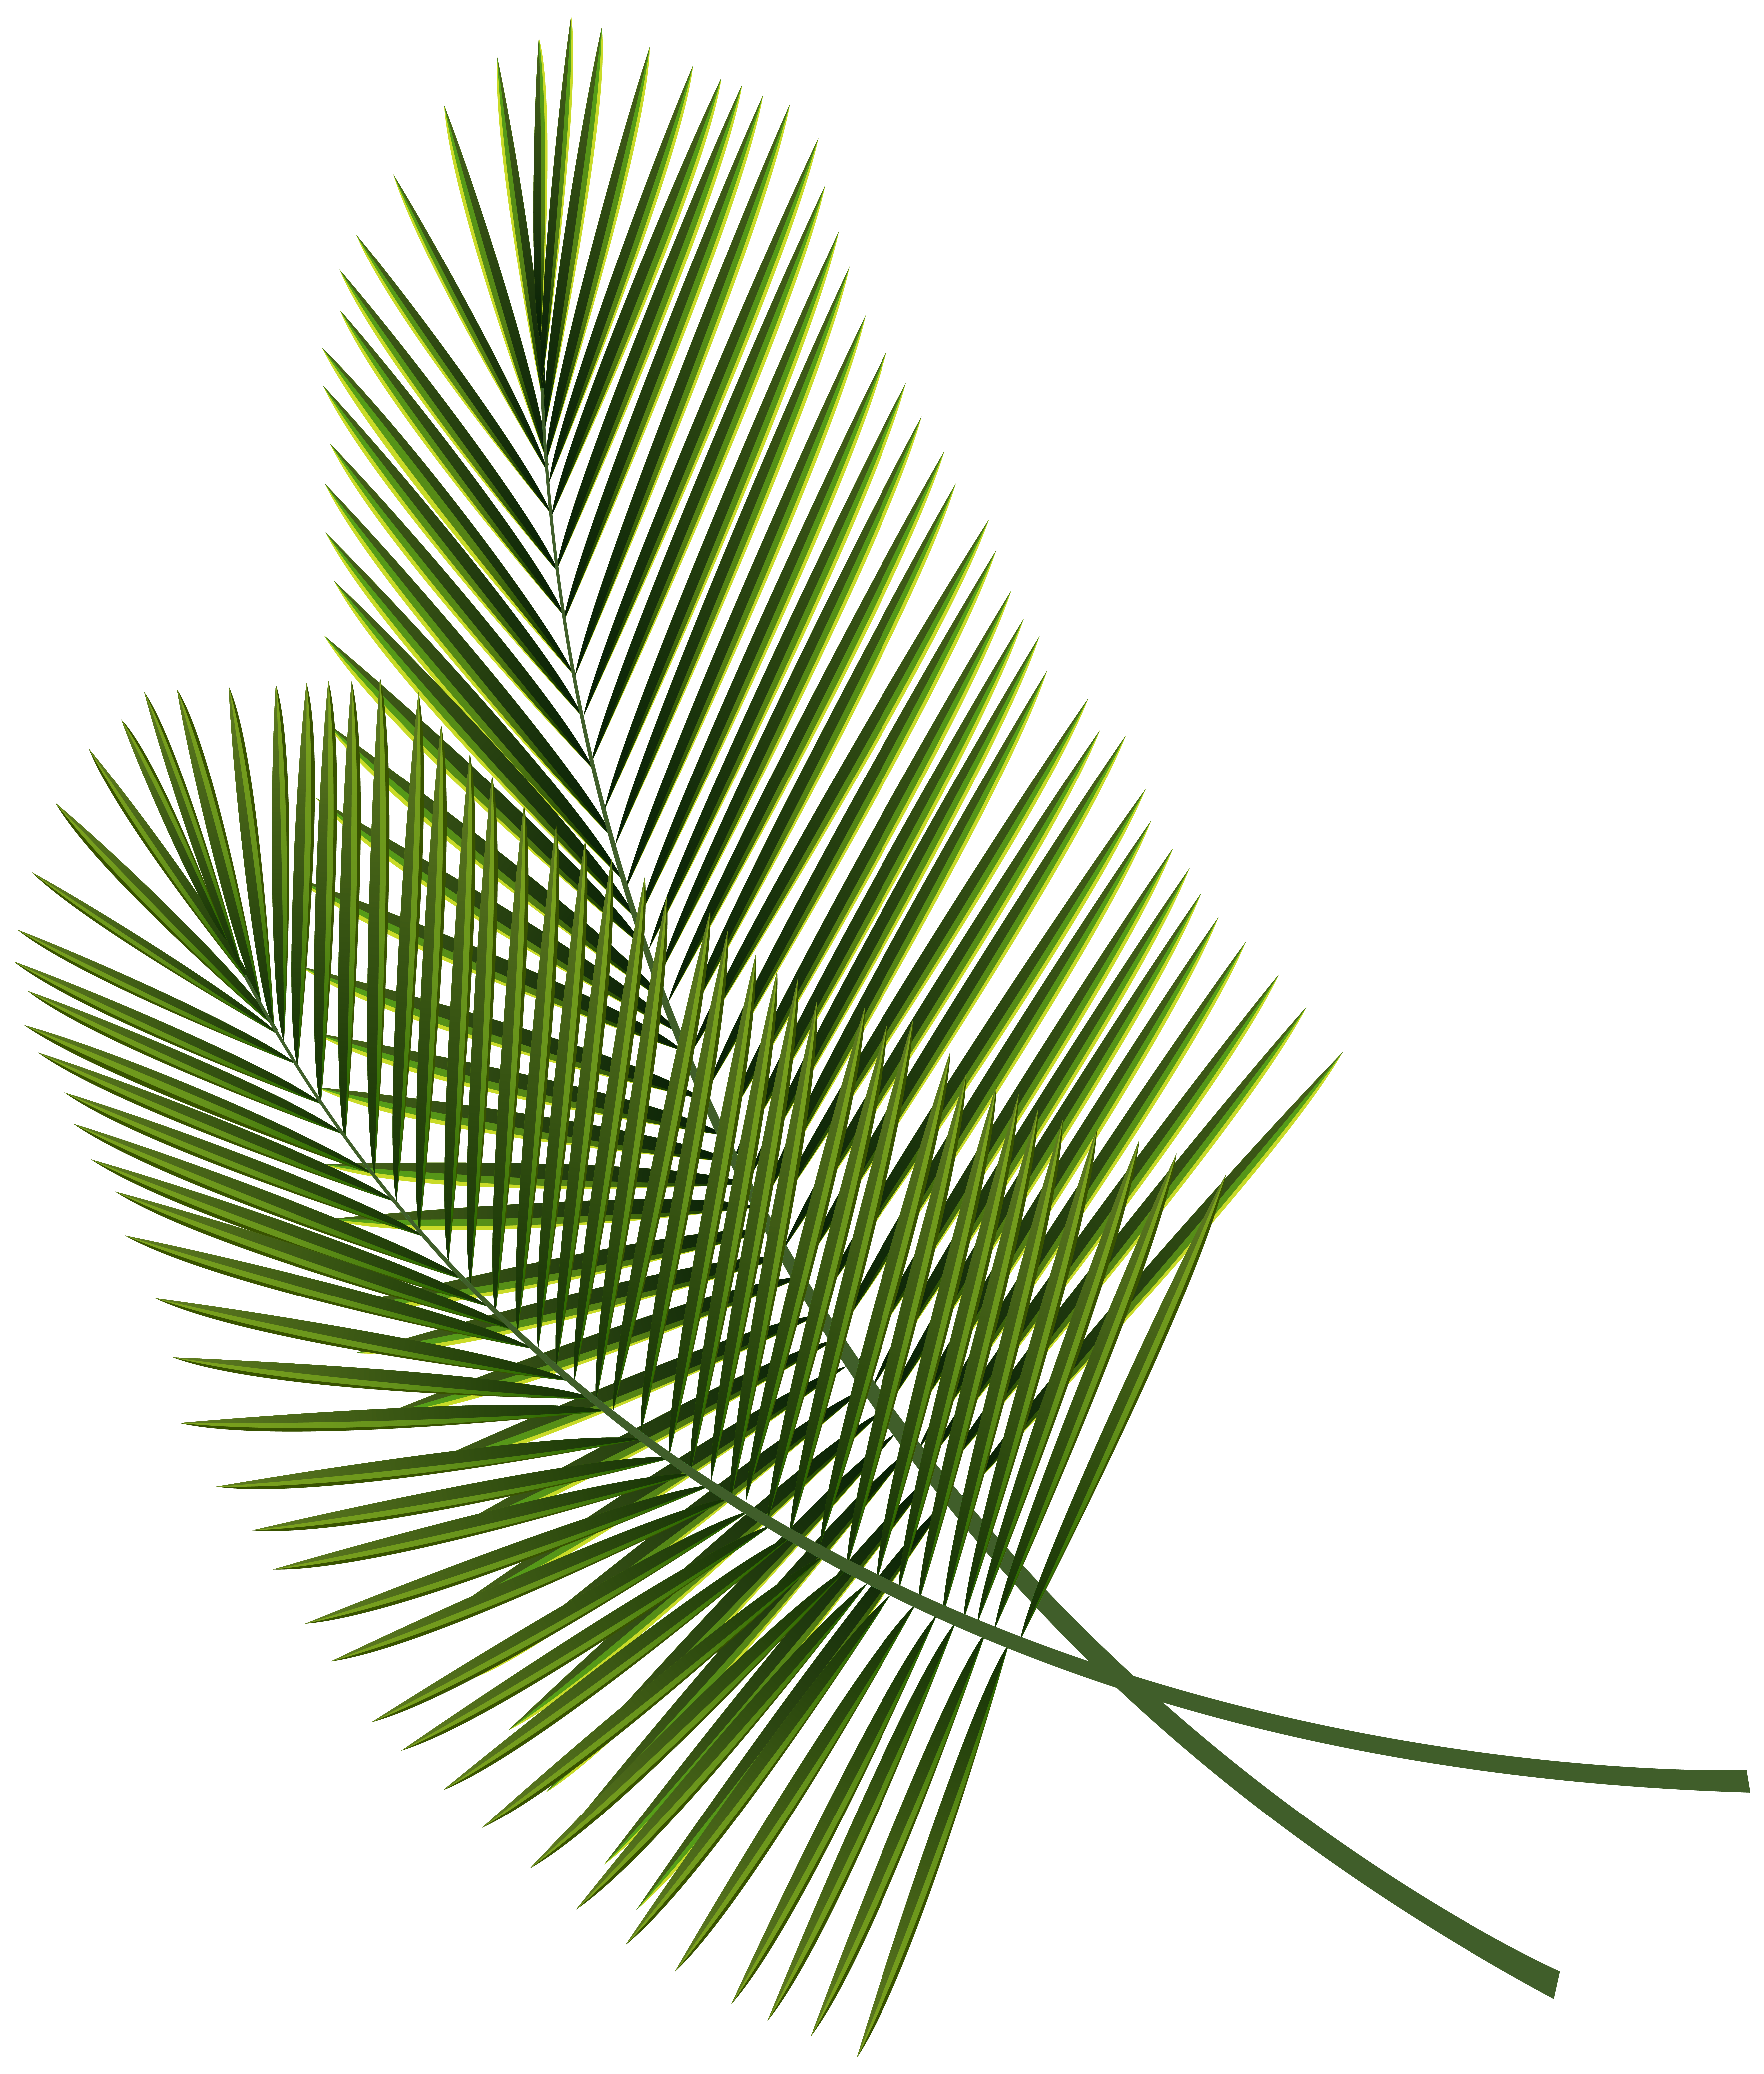 Branch clipart at getdrawings. Palm leaf transparent png transparent download